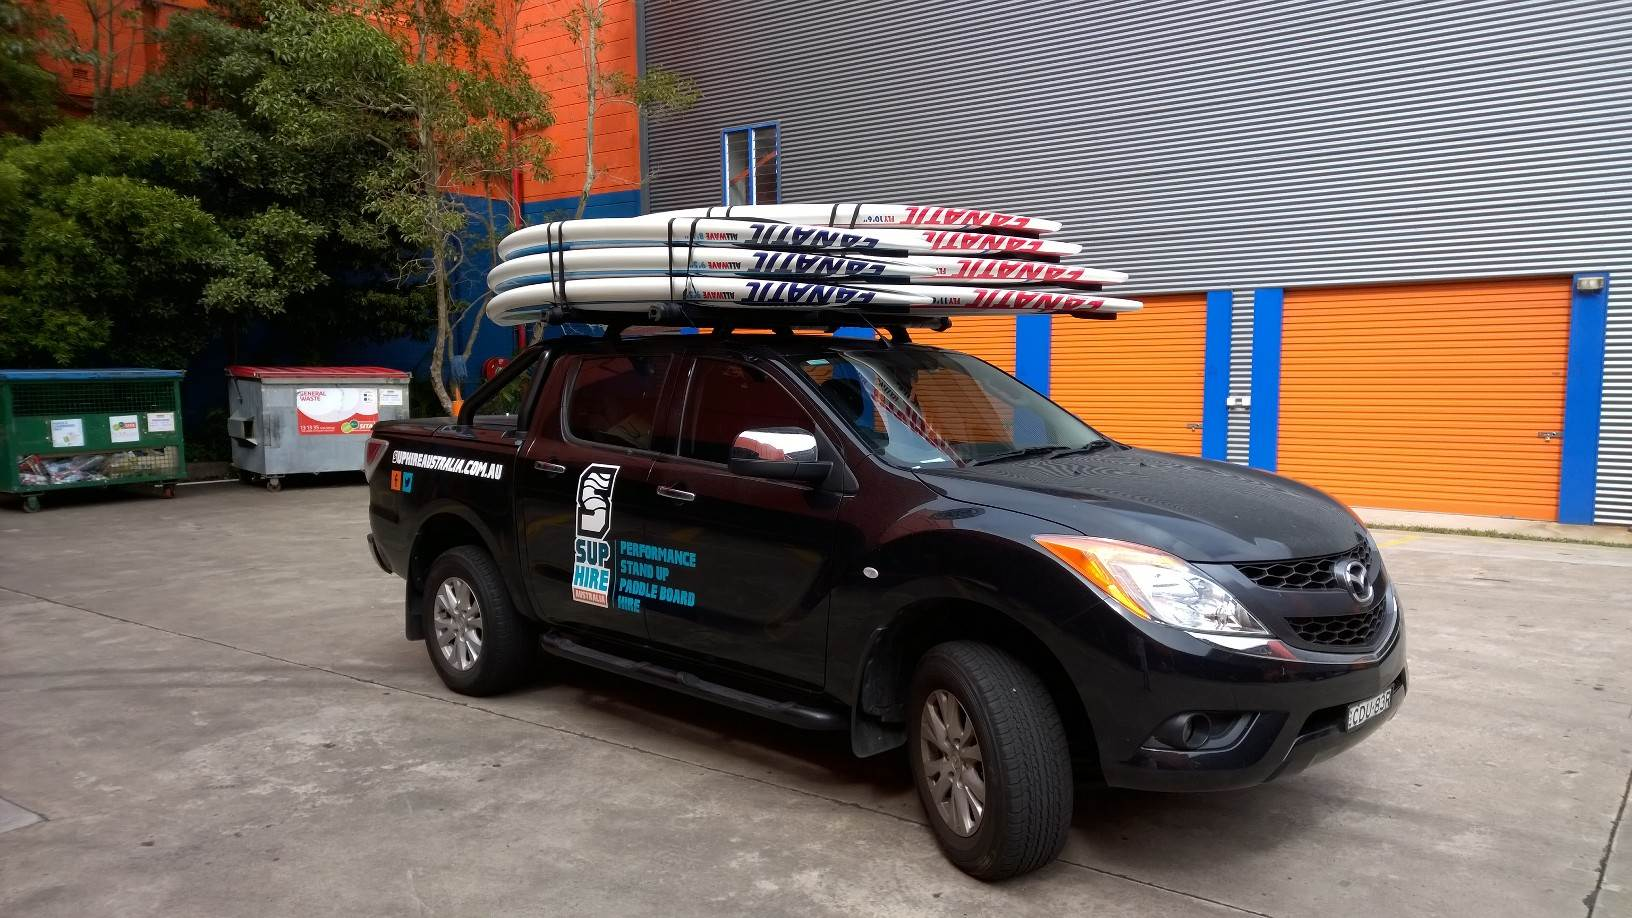 Transporting Two Sups On A Car Roof Stand Up Paddle